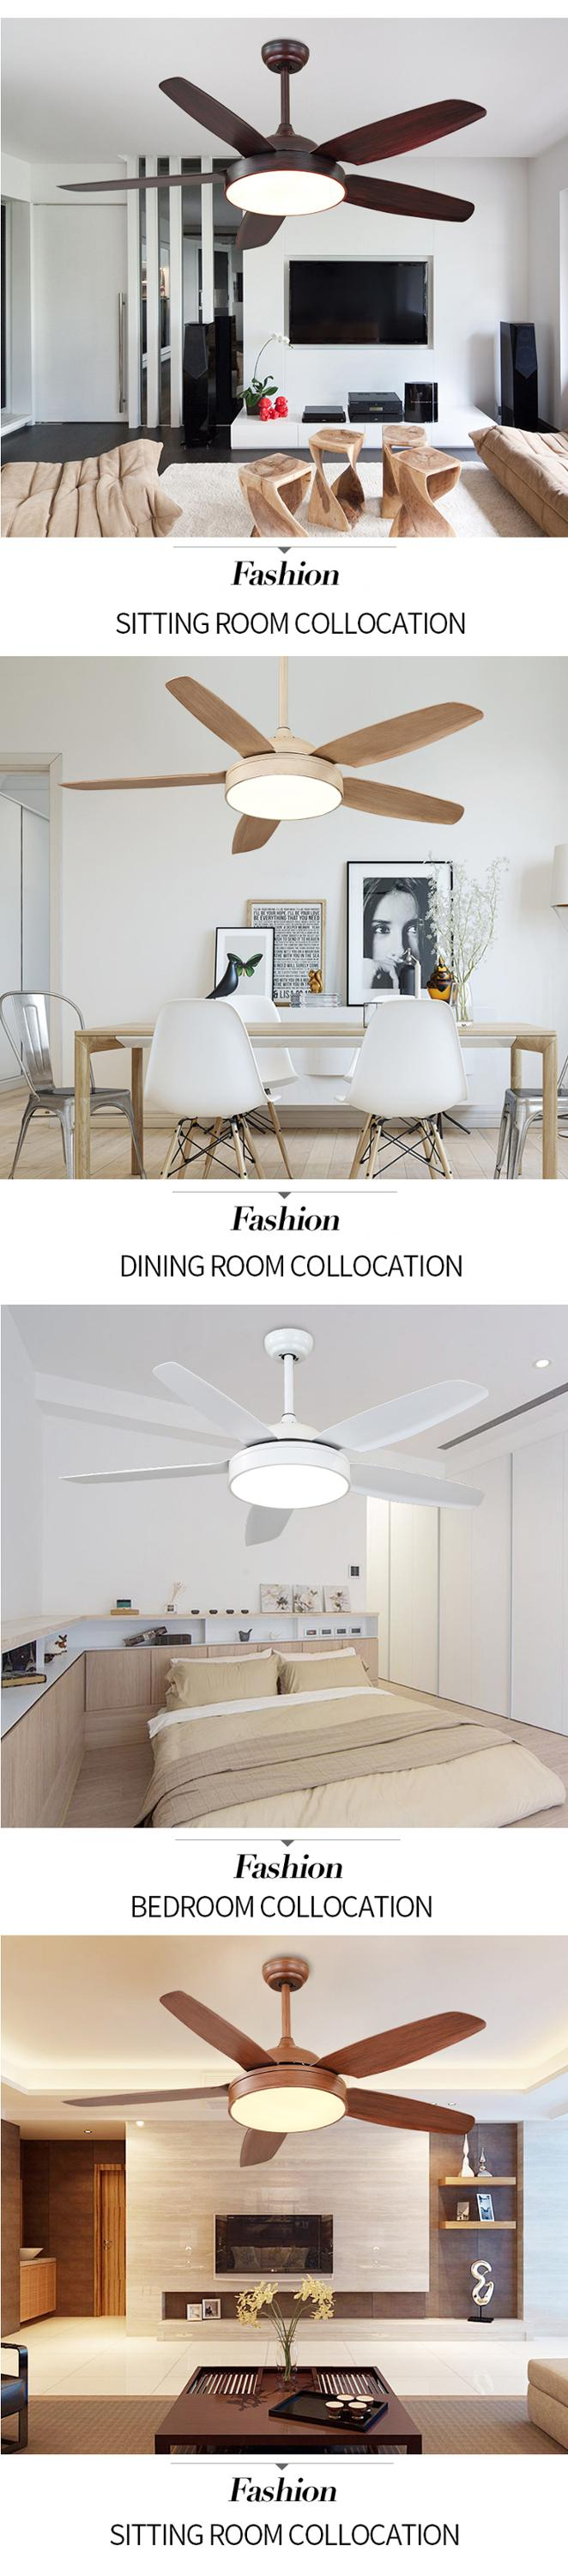 Hot selling modern new design home decorators 52 indoor ceiling fan